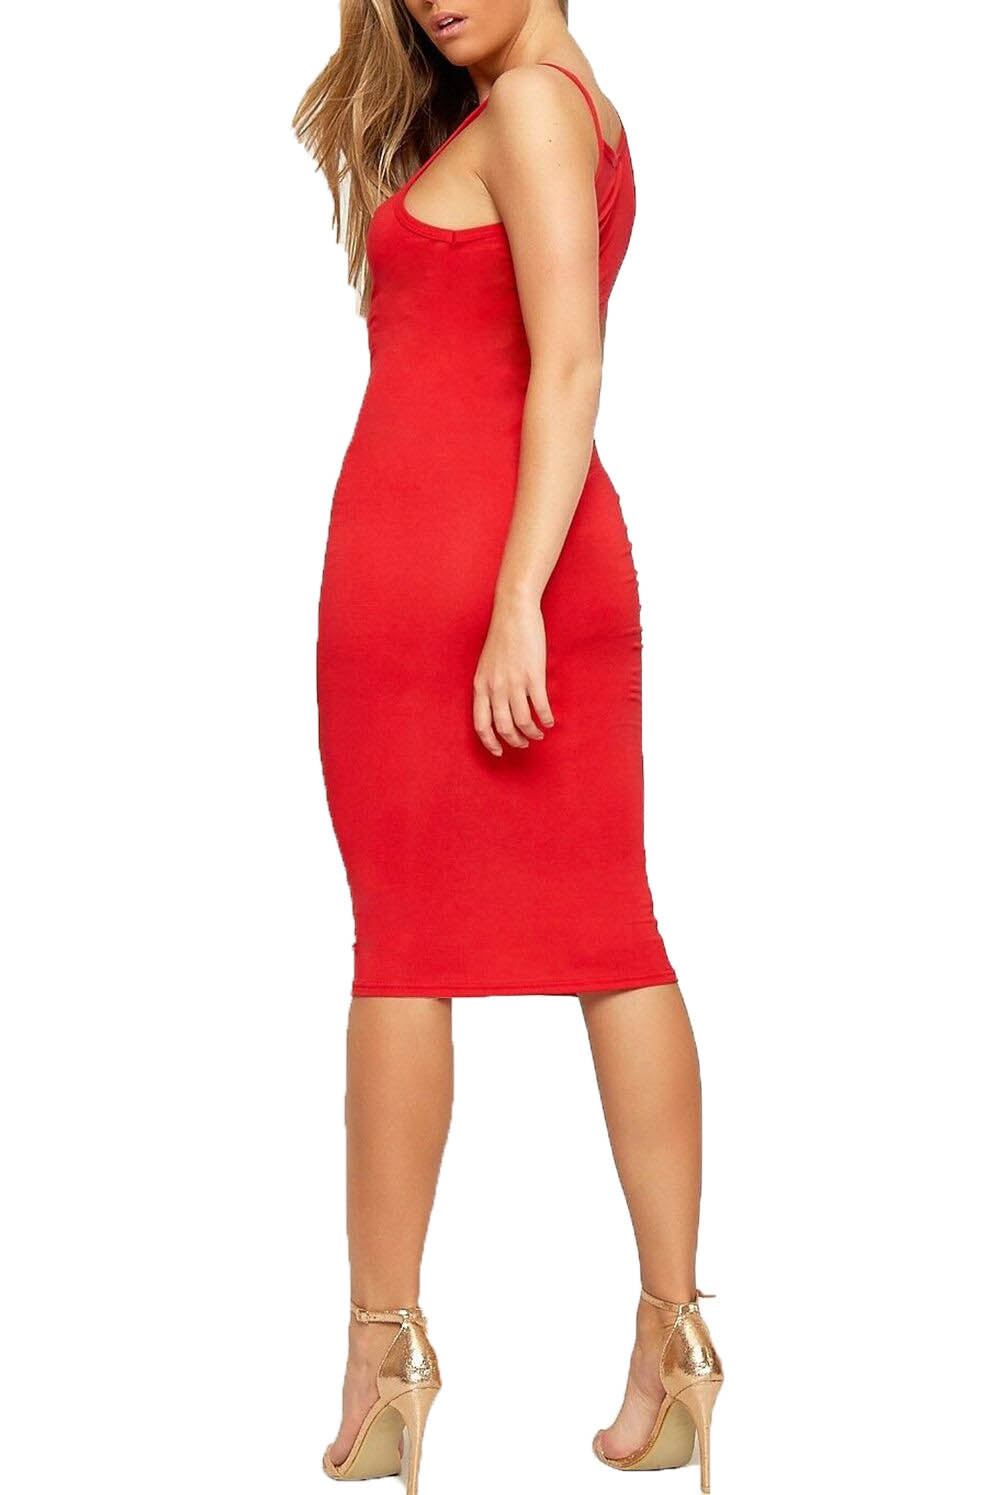 Strappy Red Basic Jersey Midi Bodycon Dress - bejealous-com